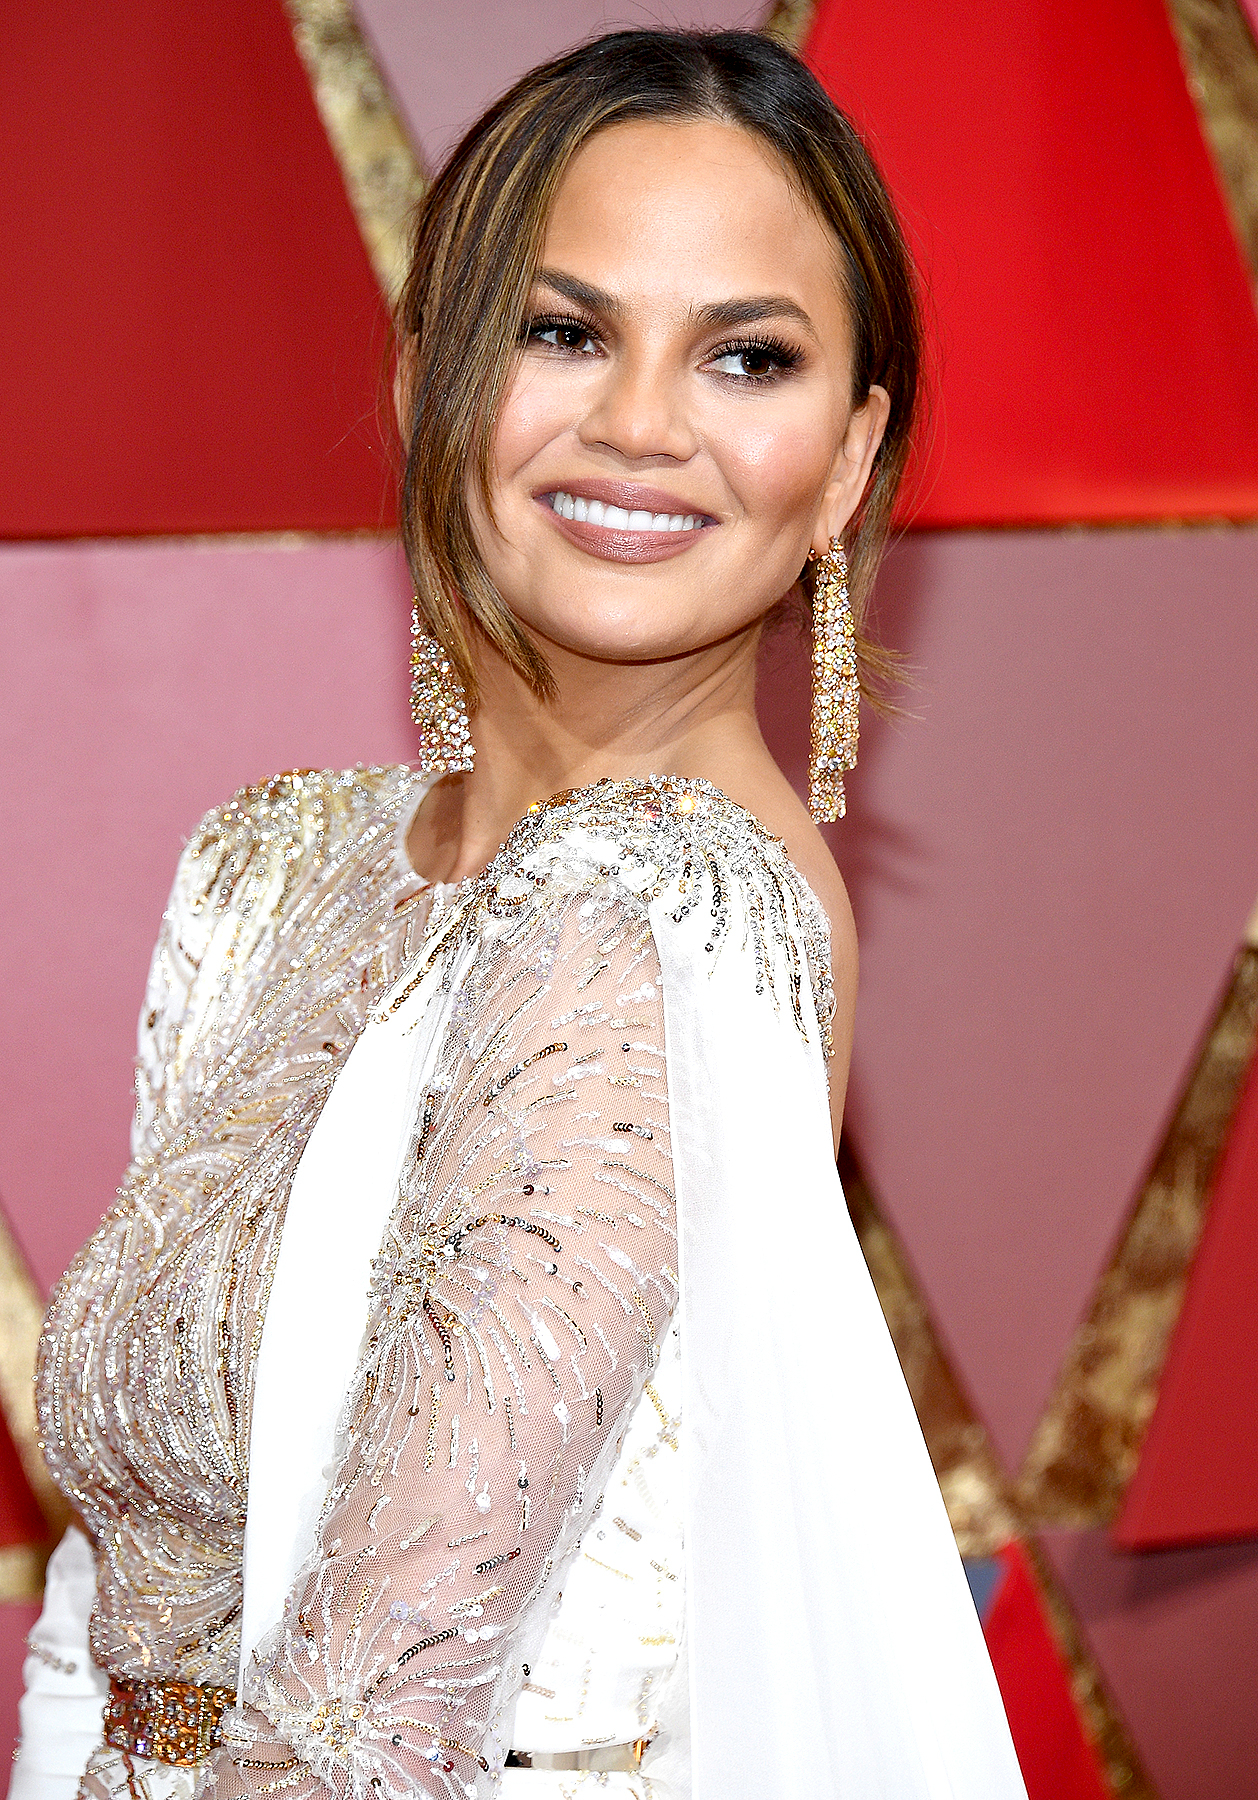 Chrissy Teigen attends the 89th Annual Academy Awards at Hollywood & Highland Center on February 26, 2017 in Hollywood, California.